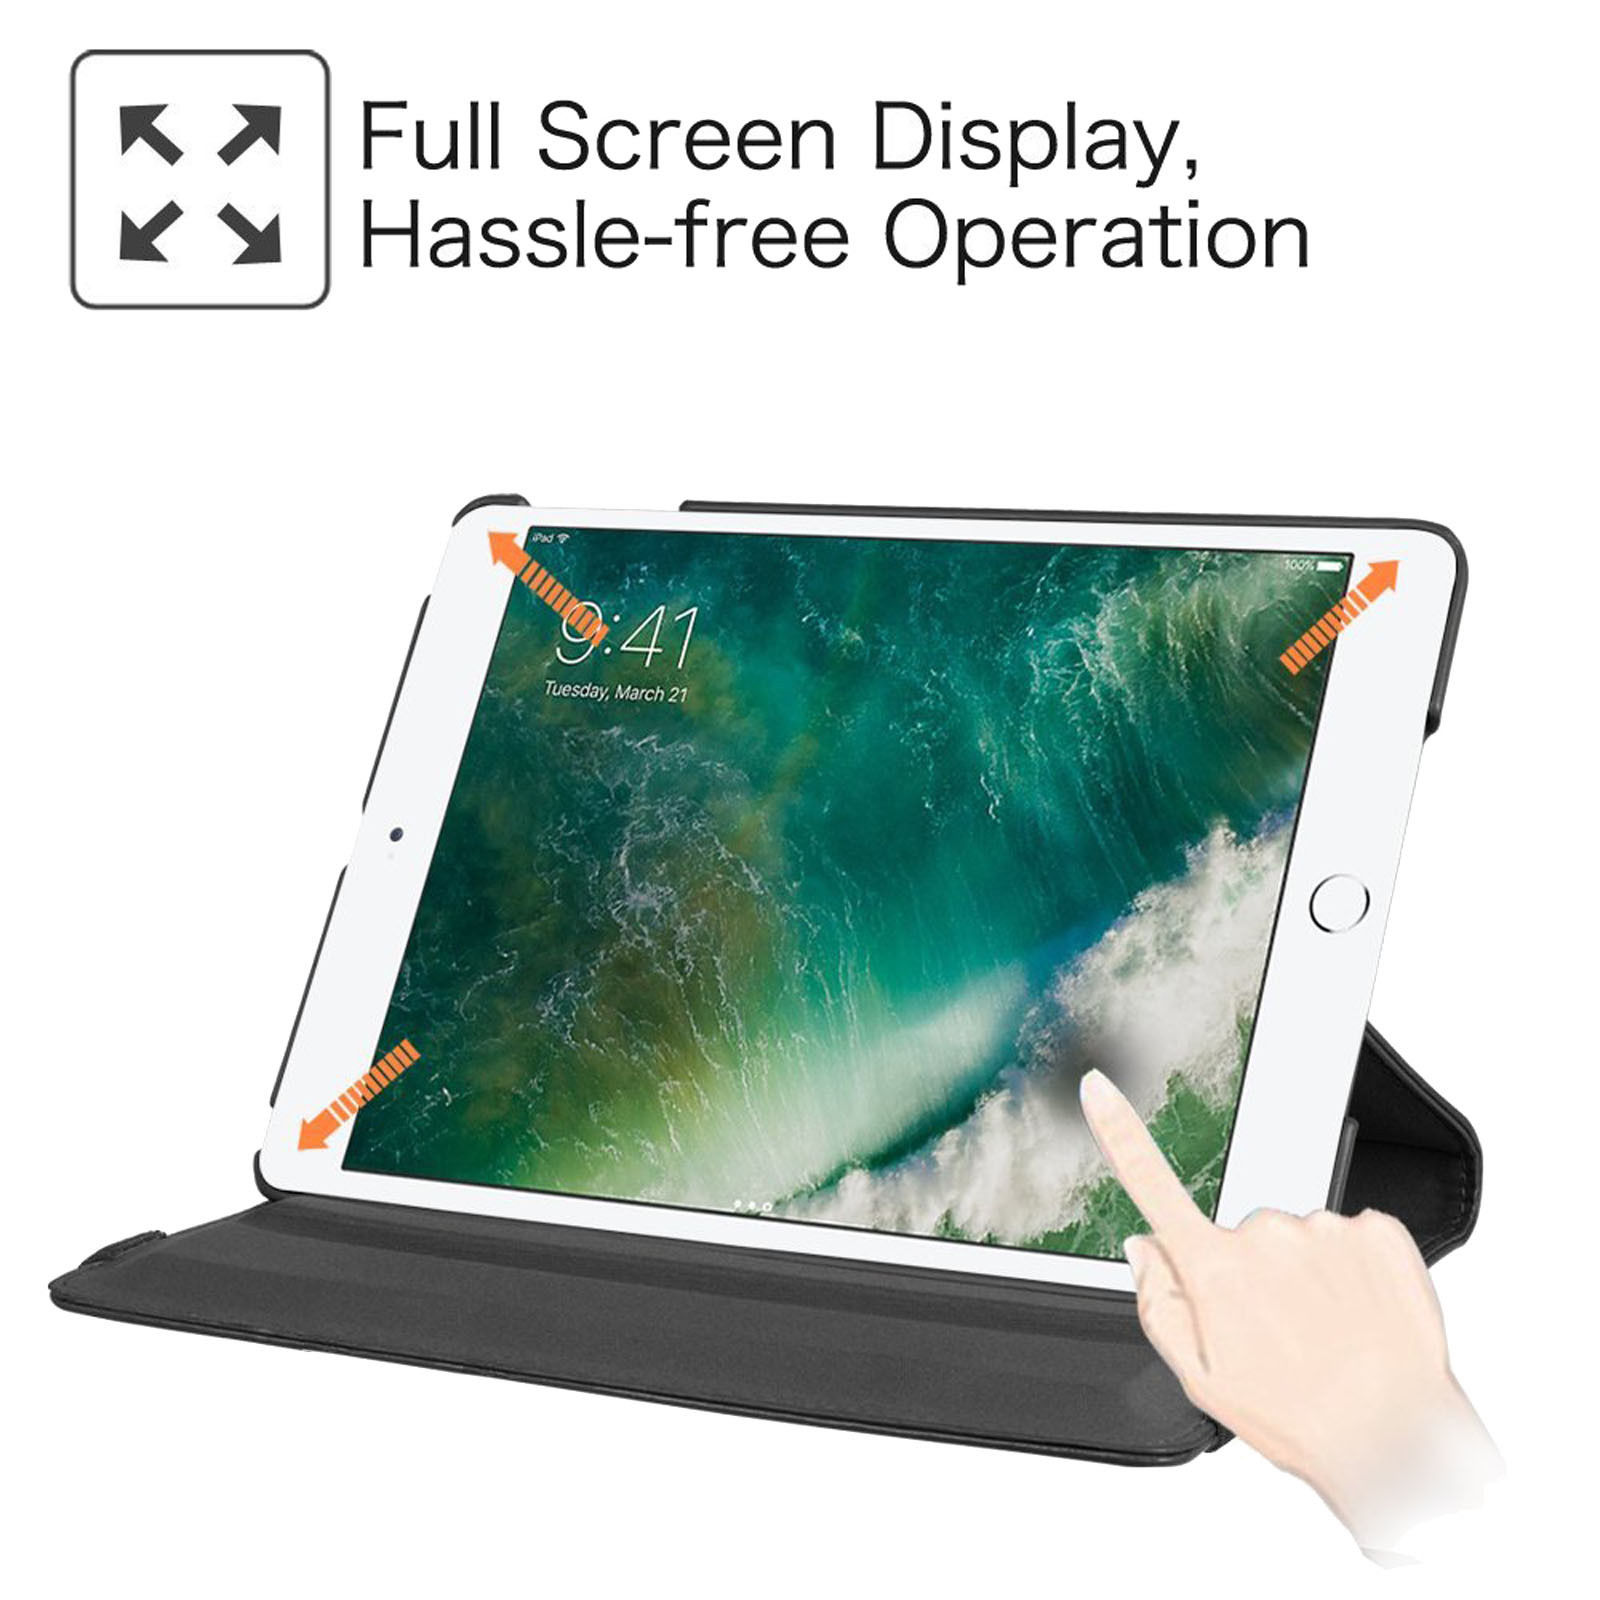 LivEditor Apple iPad 360 Degree Rotating Stand Case with Auto sleep and wake Function CA - image 2 of 4